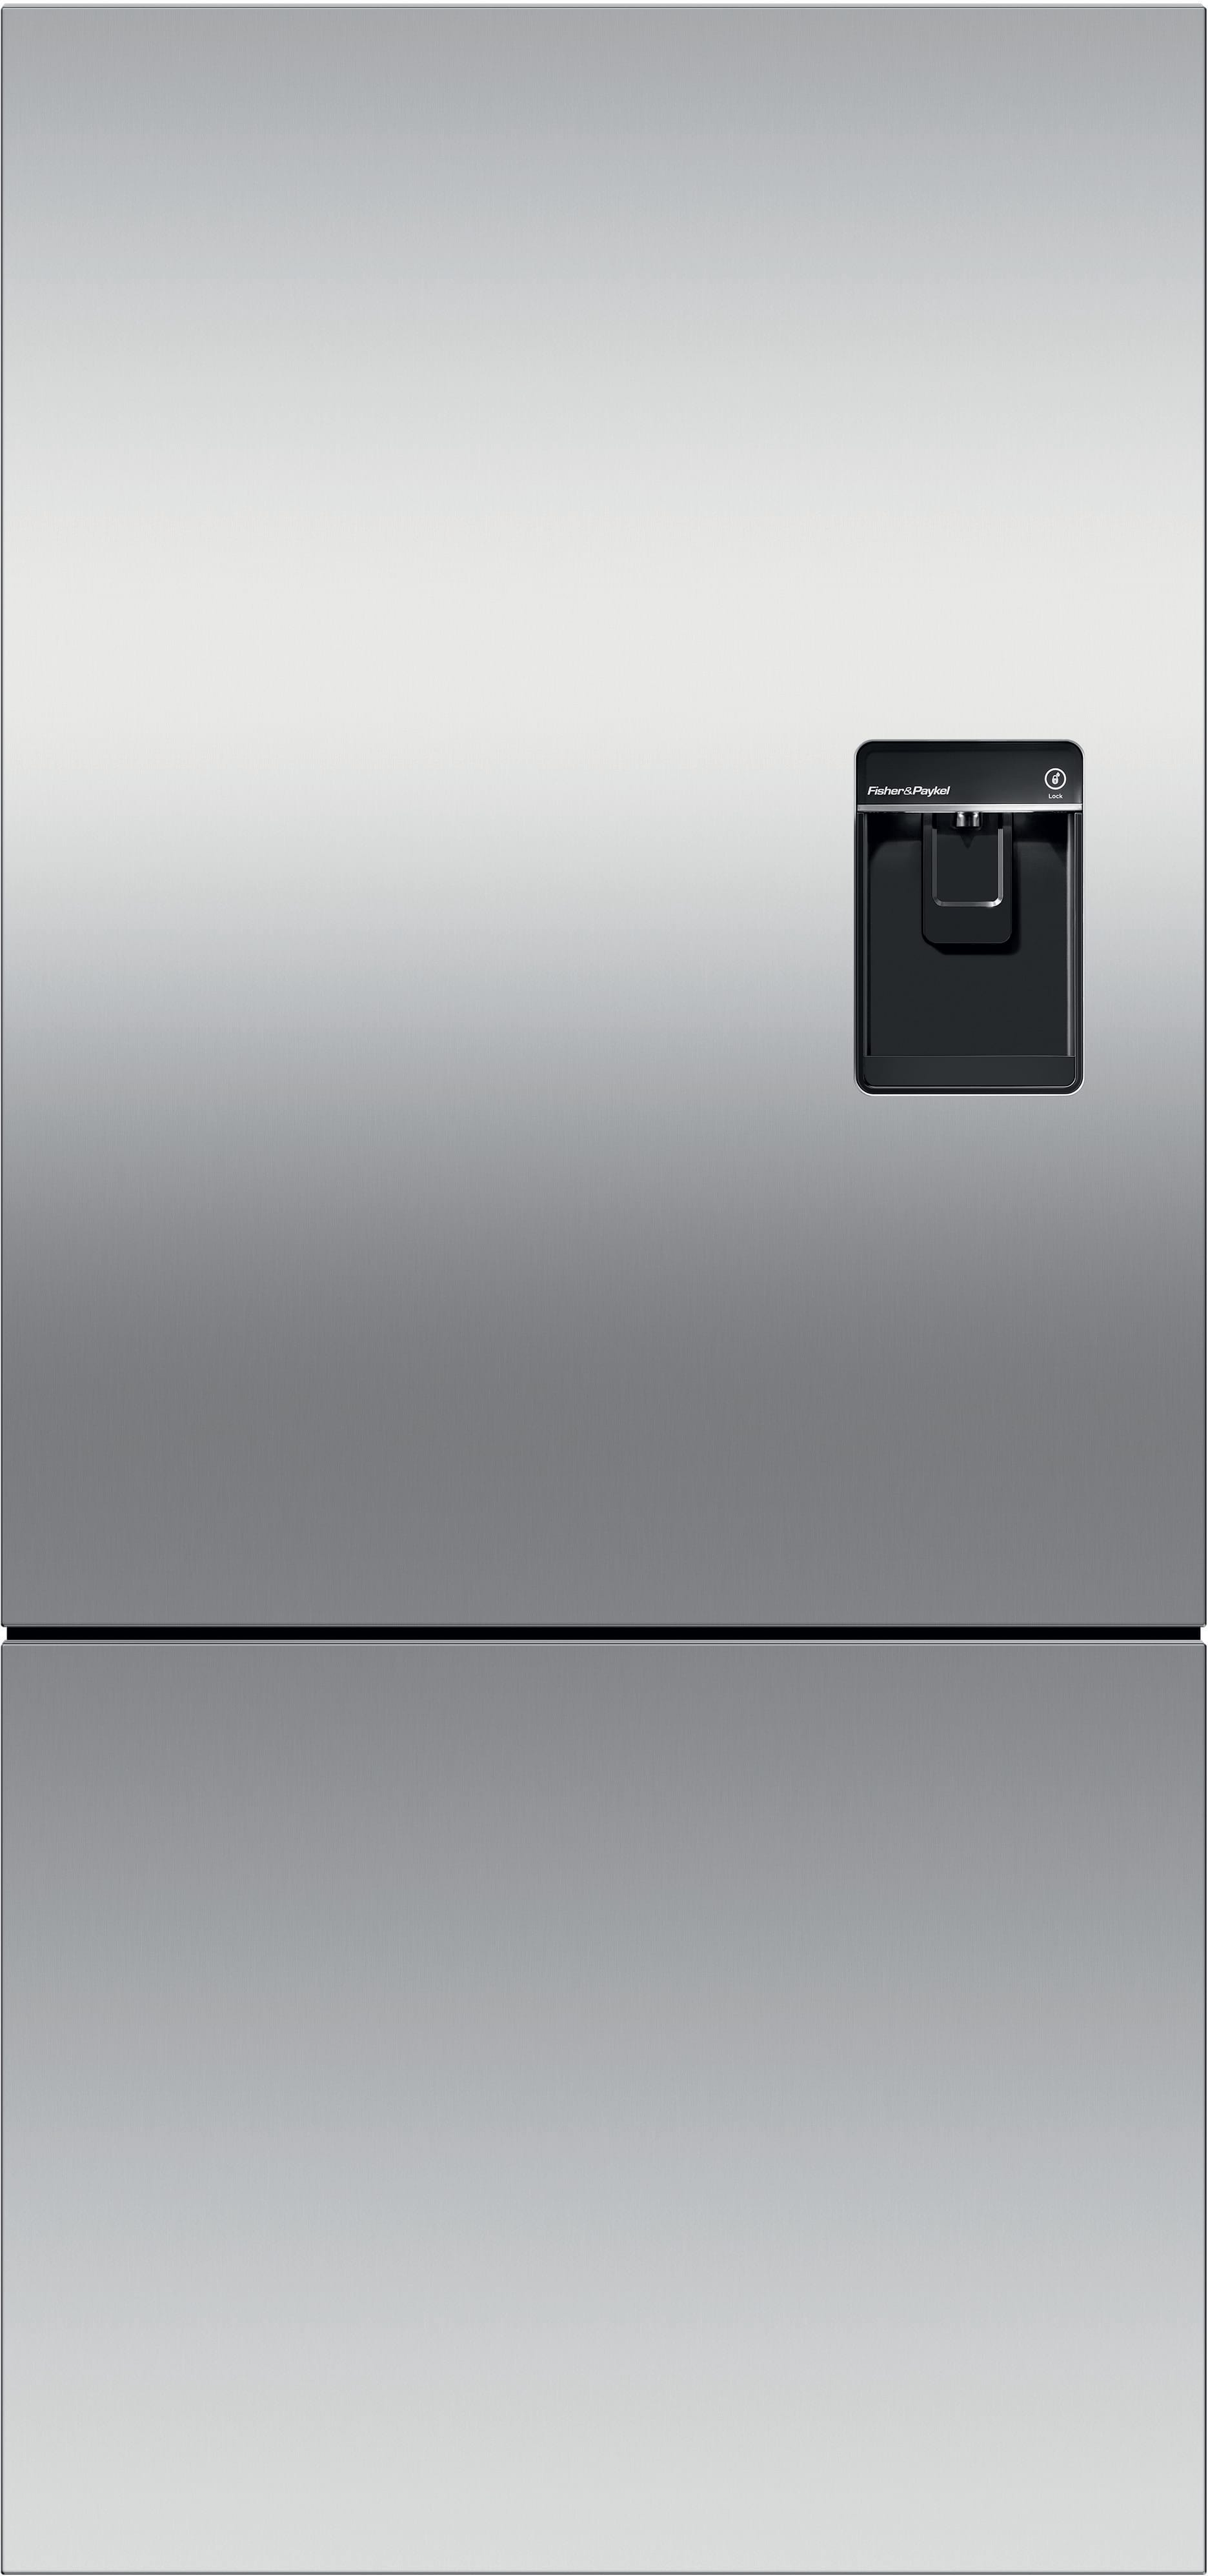 Fisher Amp Paykel Rf170brpux6 31 Inch Bottom Freezer Counter